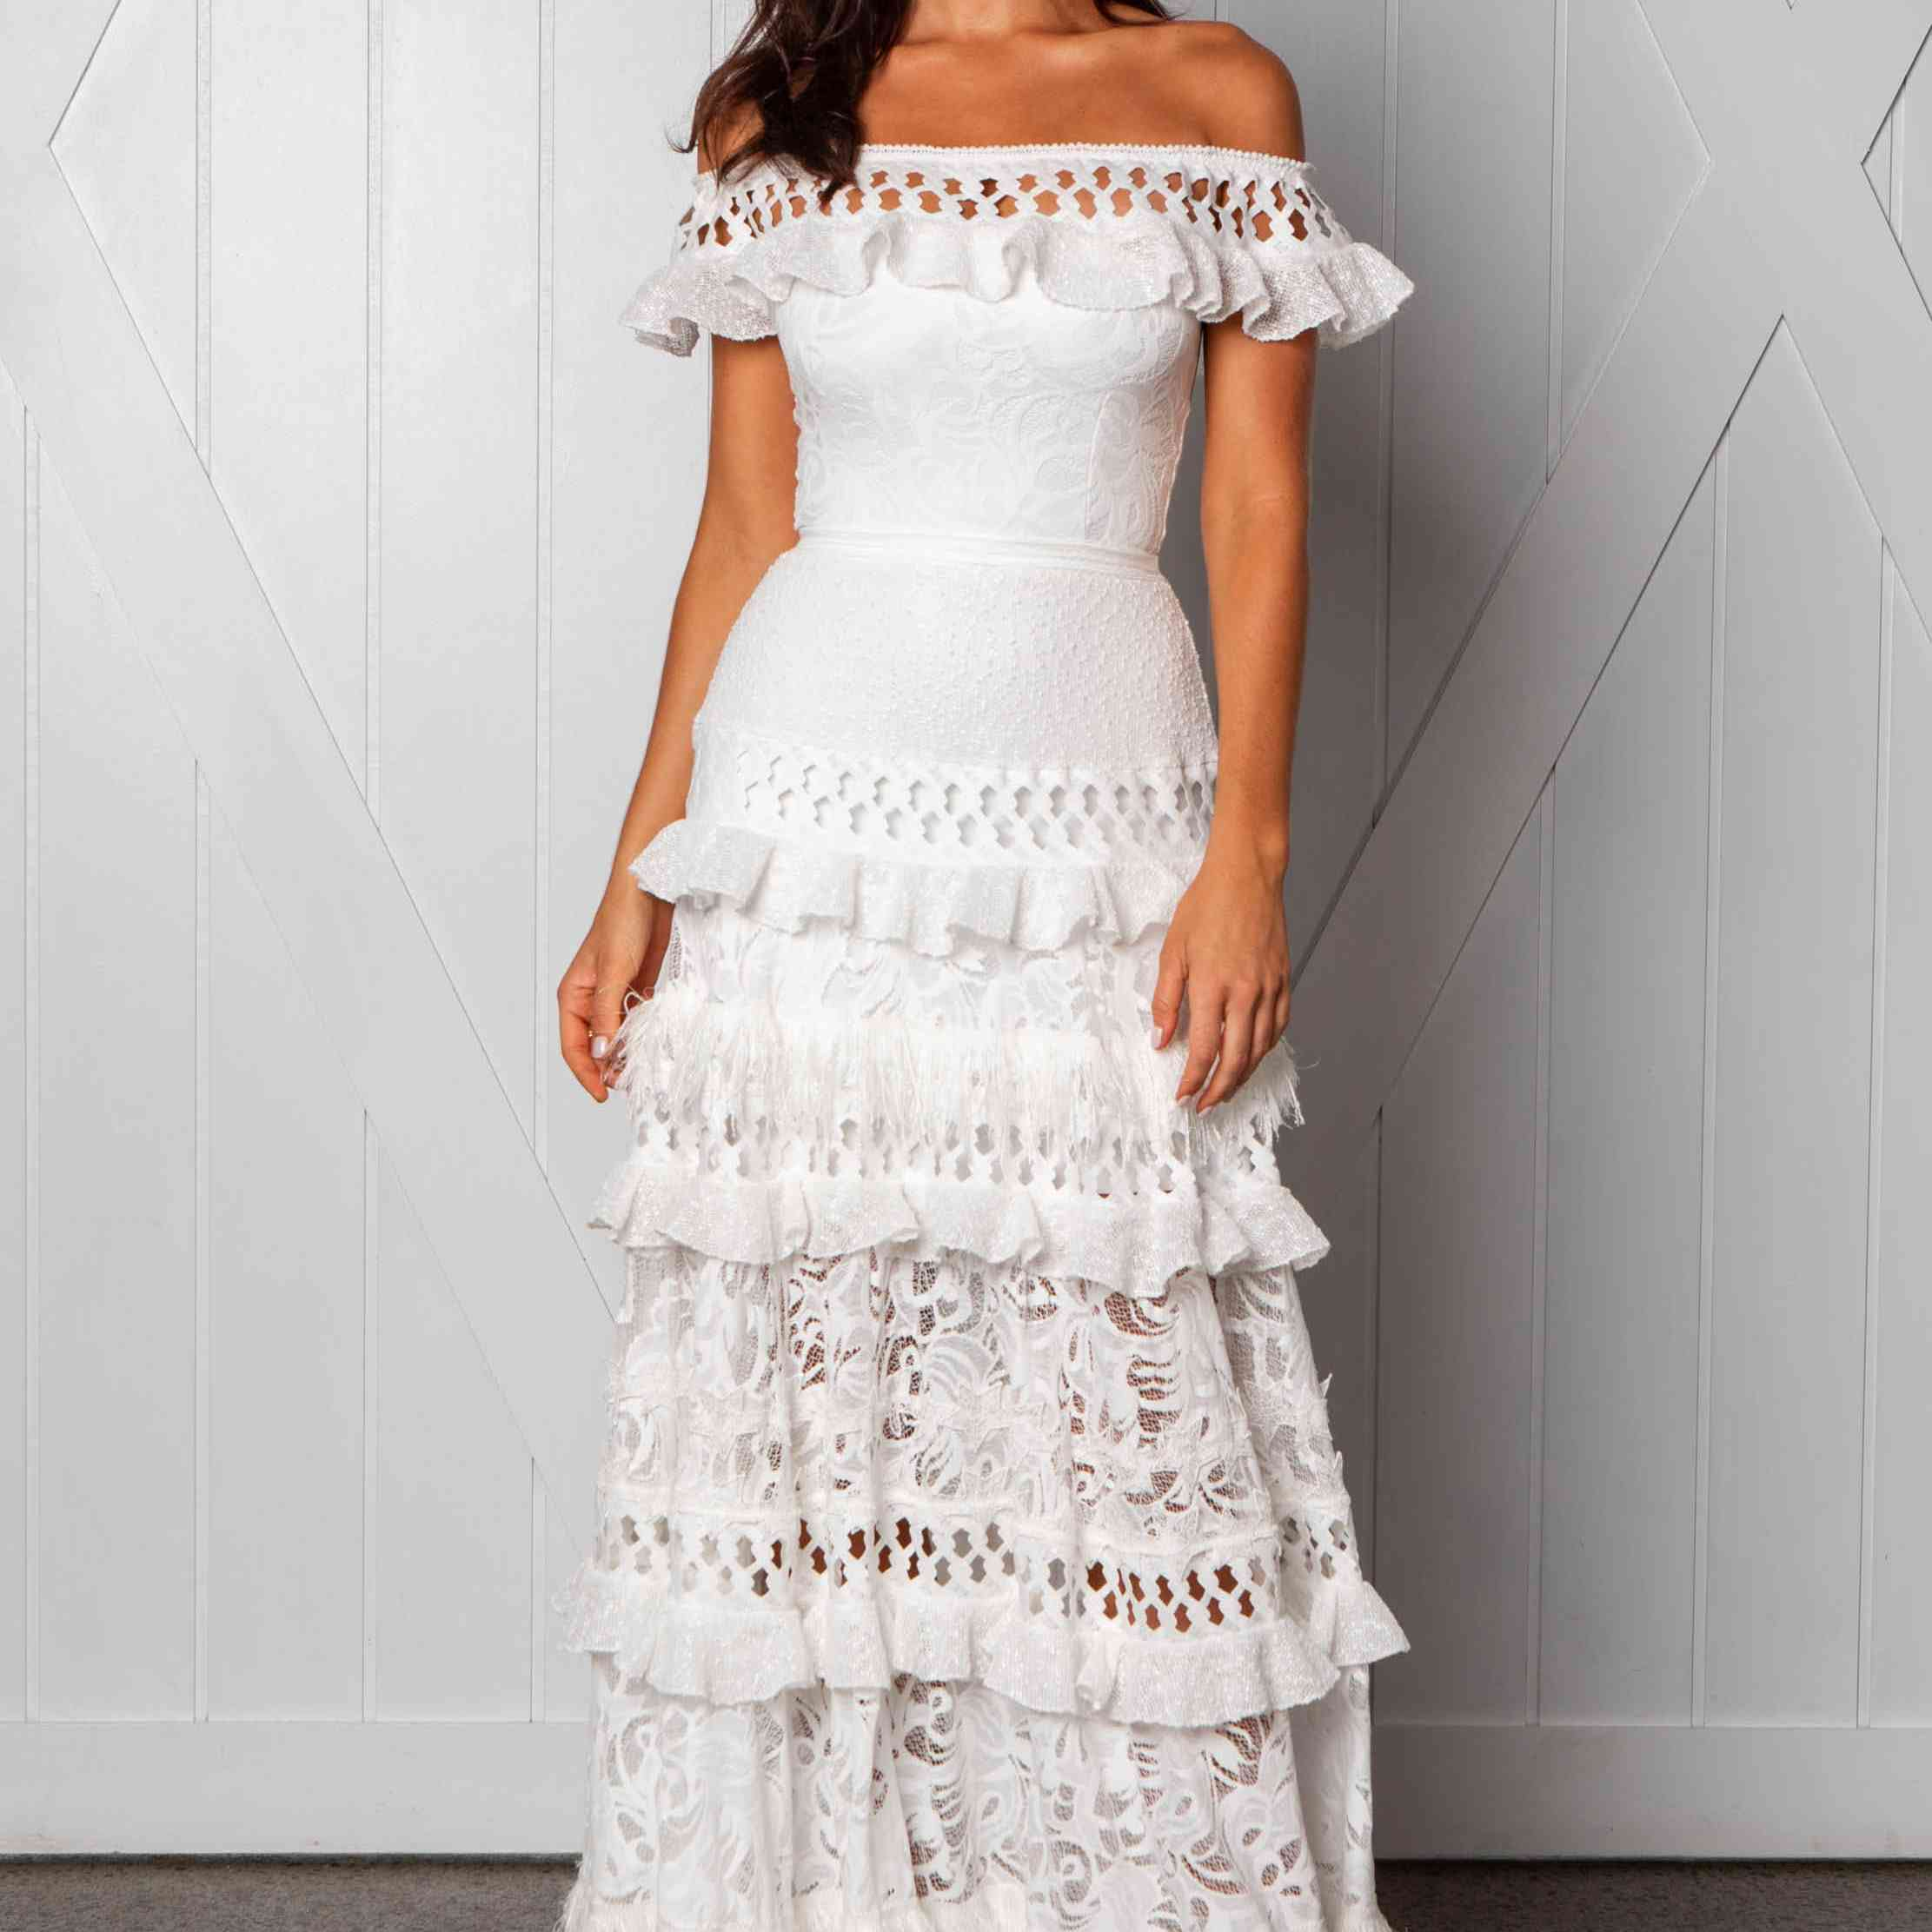 Coco tiered off-the-shoulder wedding dress